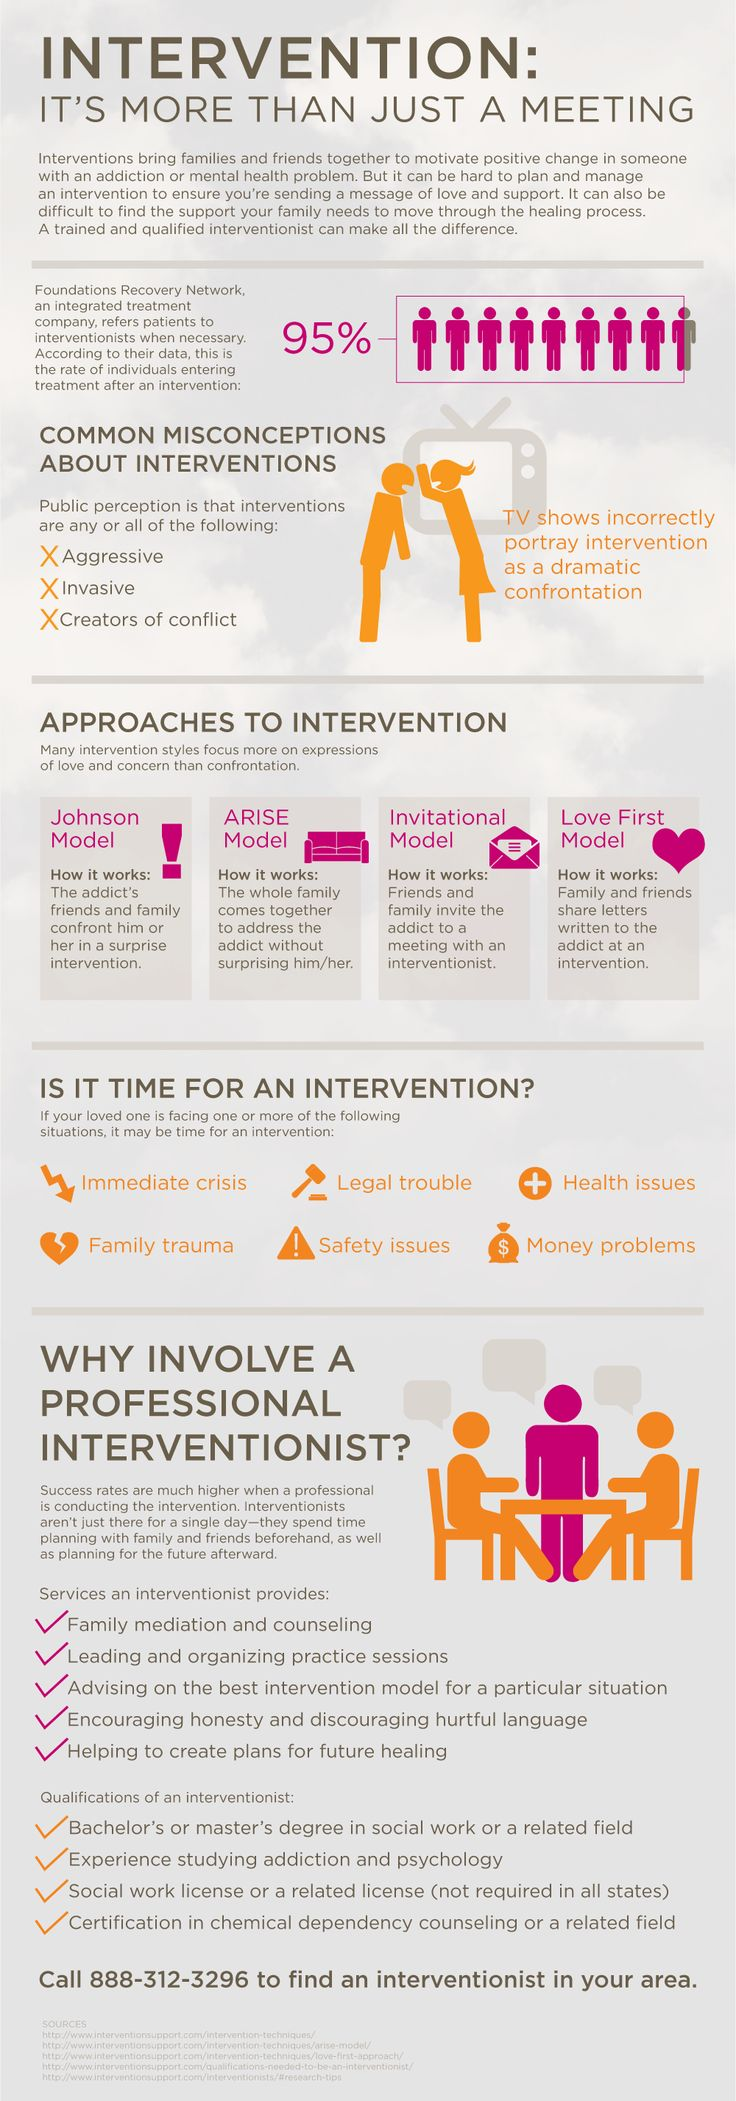 INFOGRAPHIC: Intervention - it's more than just a meeting. Interventions bring families and friends together to motivate positive change in someone with an addiction or mental health problem. A trained and qualified interventionist can make all the difference.